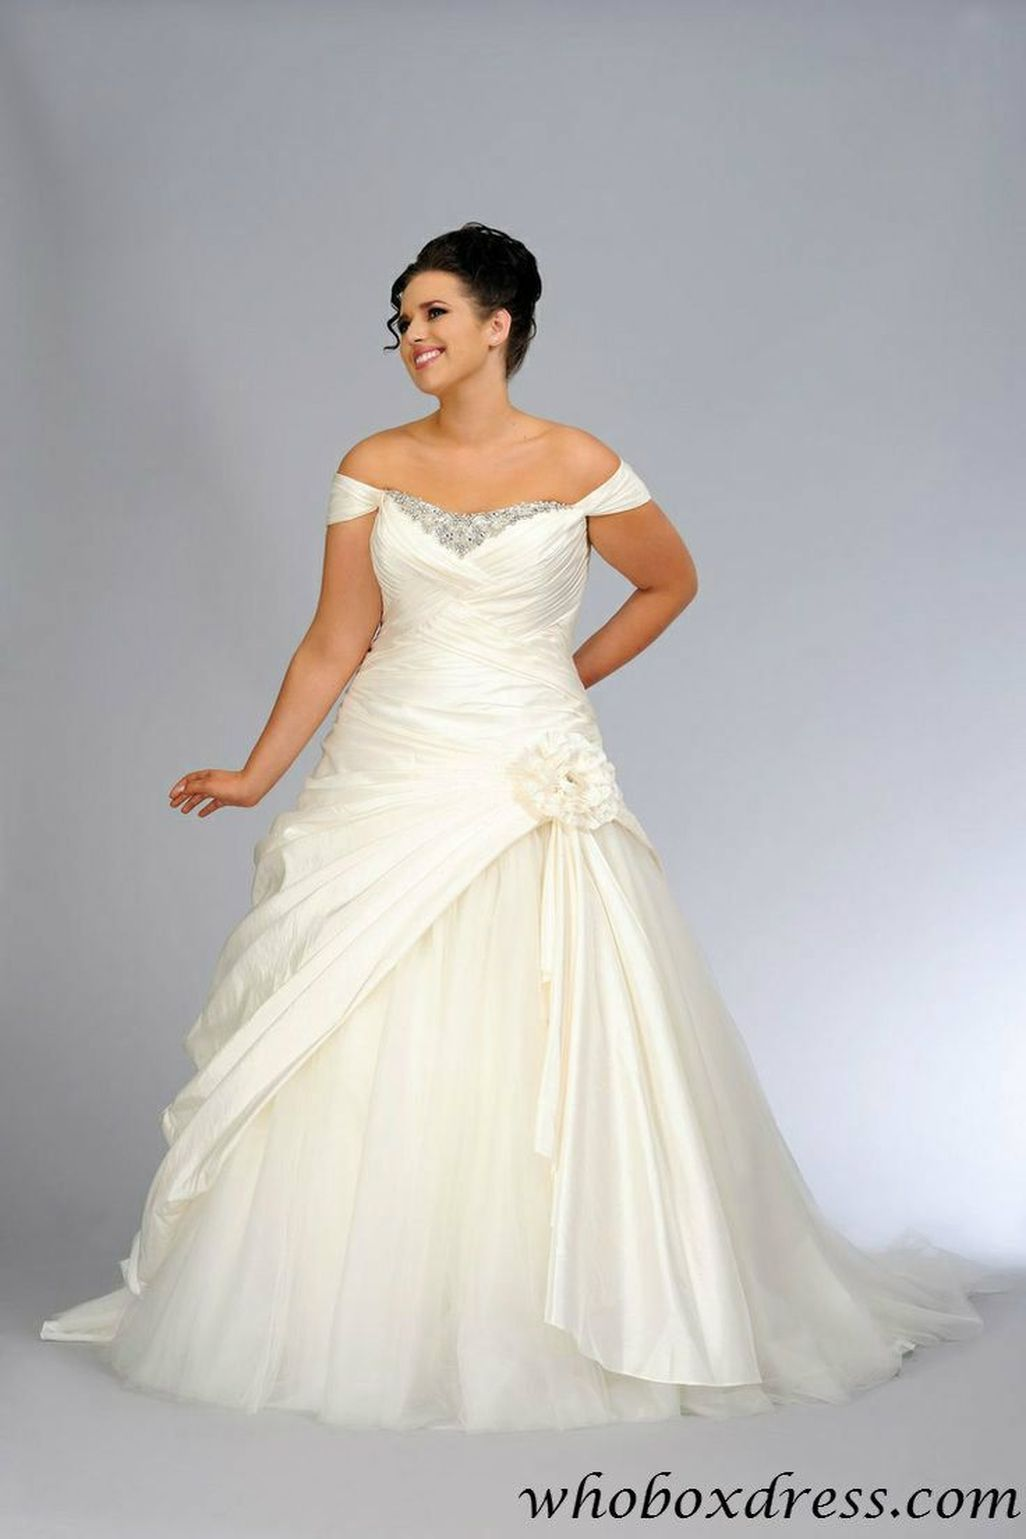 Cool cute plus size mermaid wedding dresses ideas more at